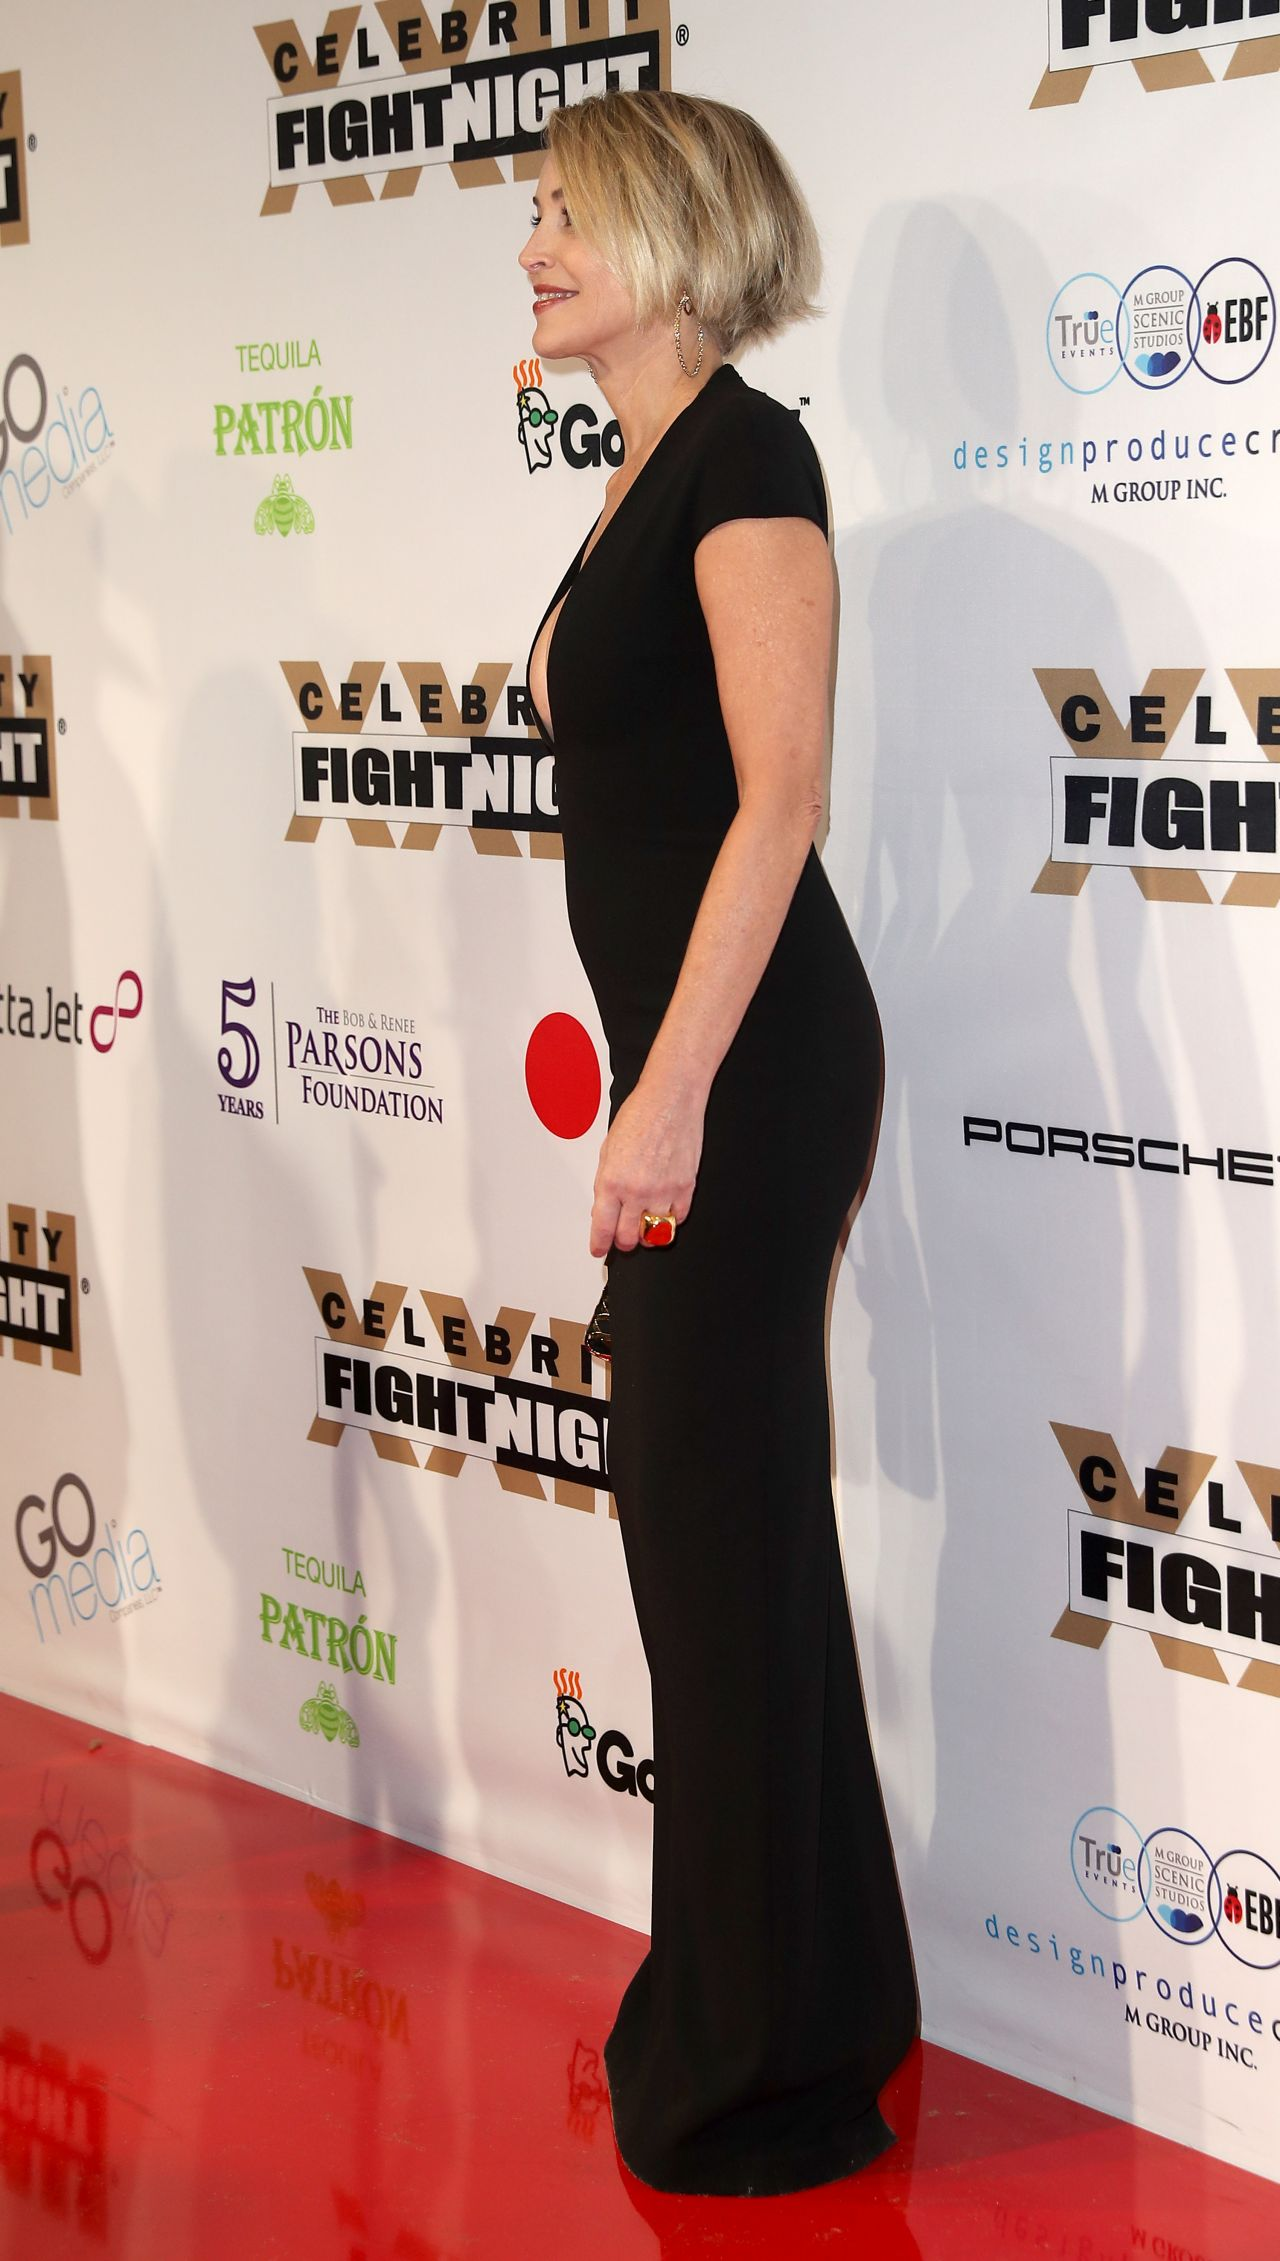 Maret 2012 - celebrity-fightss.blogspot.com